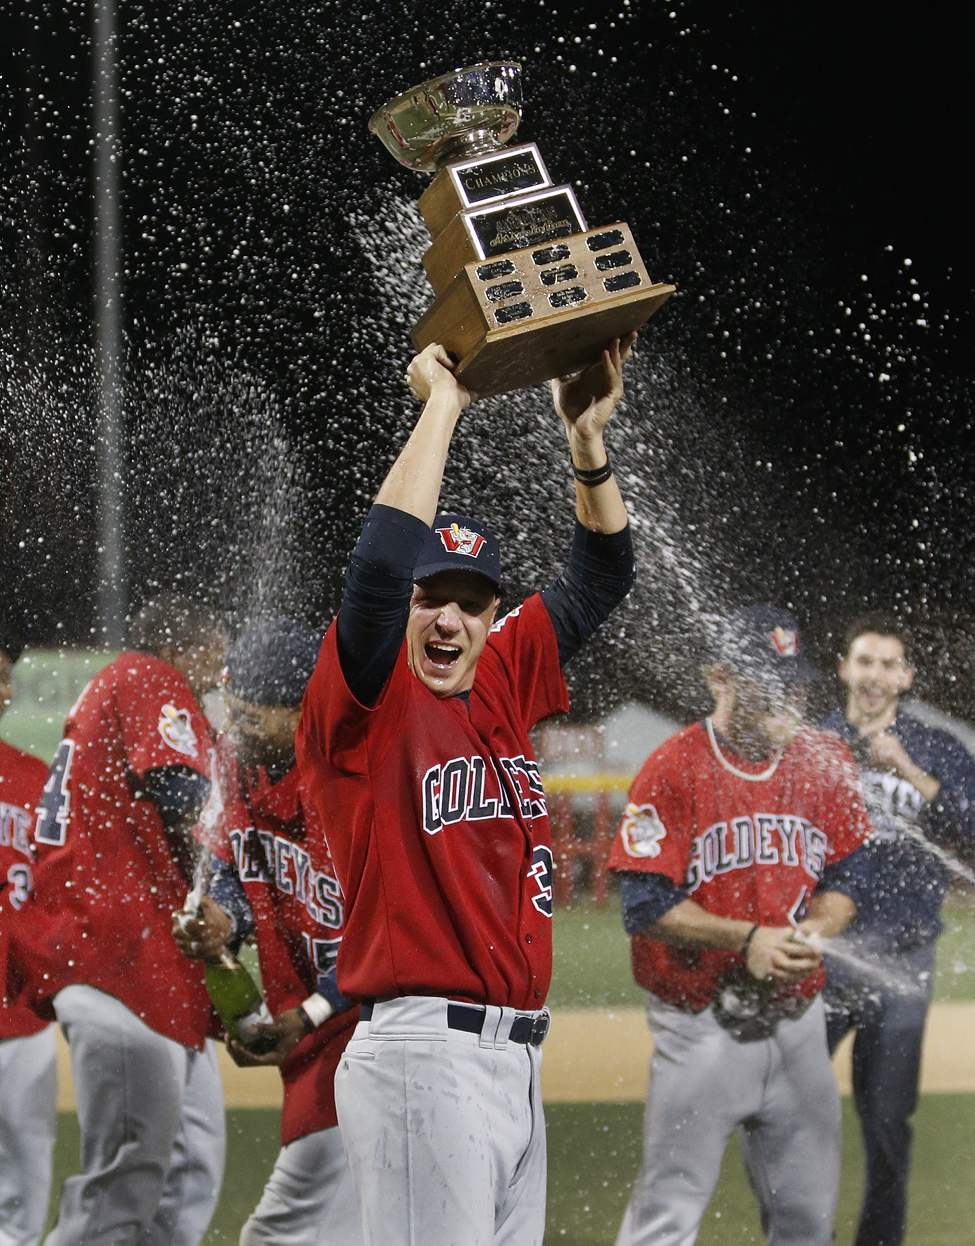 Winnipeg Goldeyes' Ace Walker holds up the trophy as the champagne flows after they defeated the Wichita Wingnuts 8-3 to win the American Association Championship in Wichita, Kansas Friday night. September 14, 2012 (Fernando Salazar / Wichita Eagle for the Winnipeg Free Press)